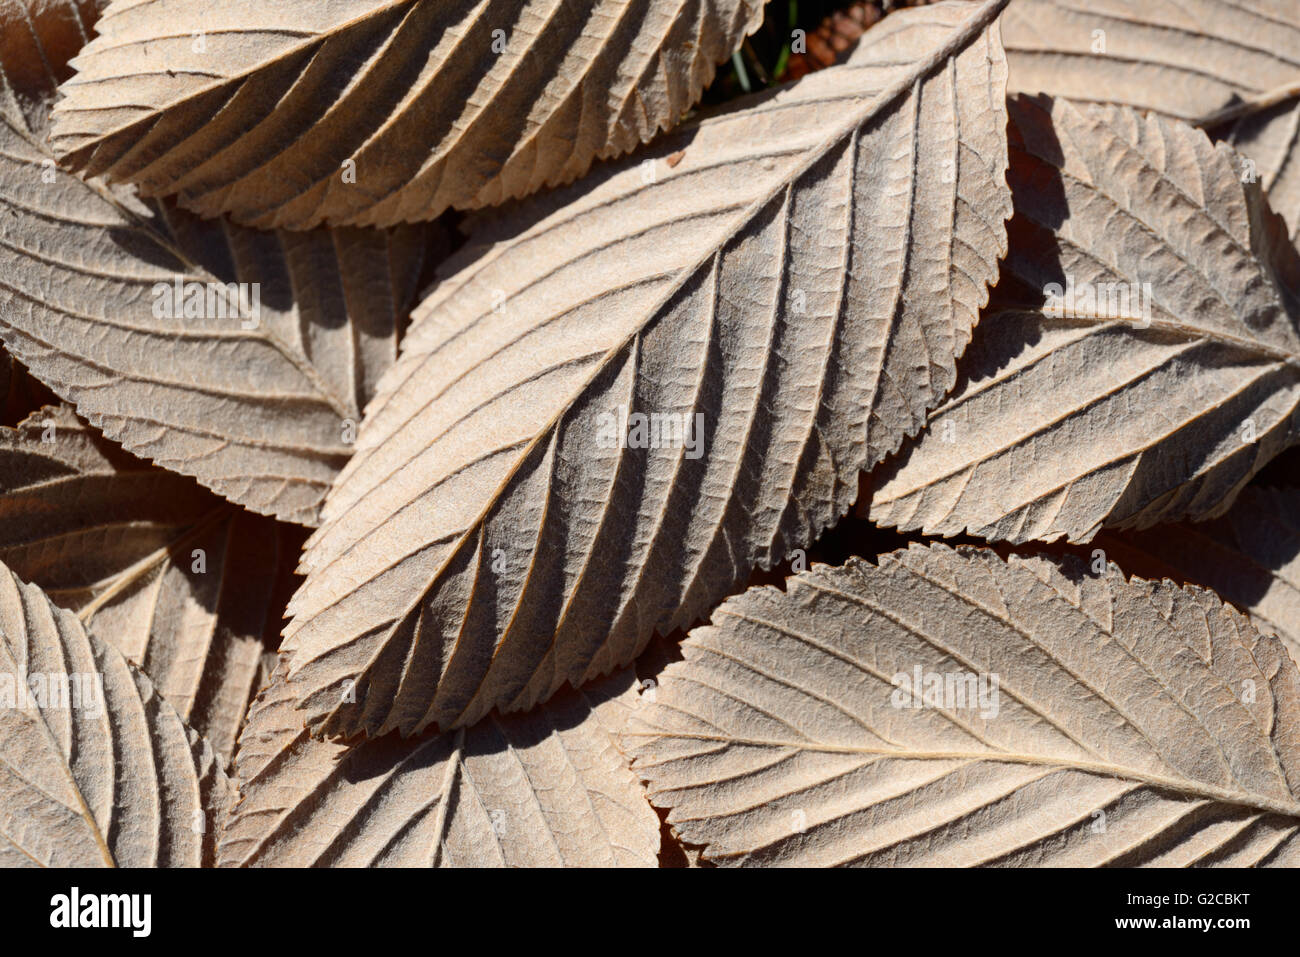 Leaf Pattern or Patterns of Common Whitebeam, Sorbus aria, Leaves - Stock Image